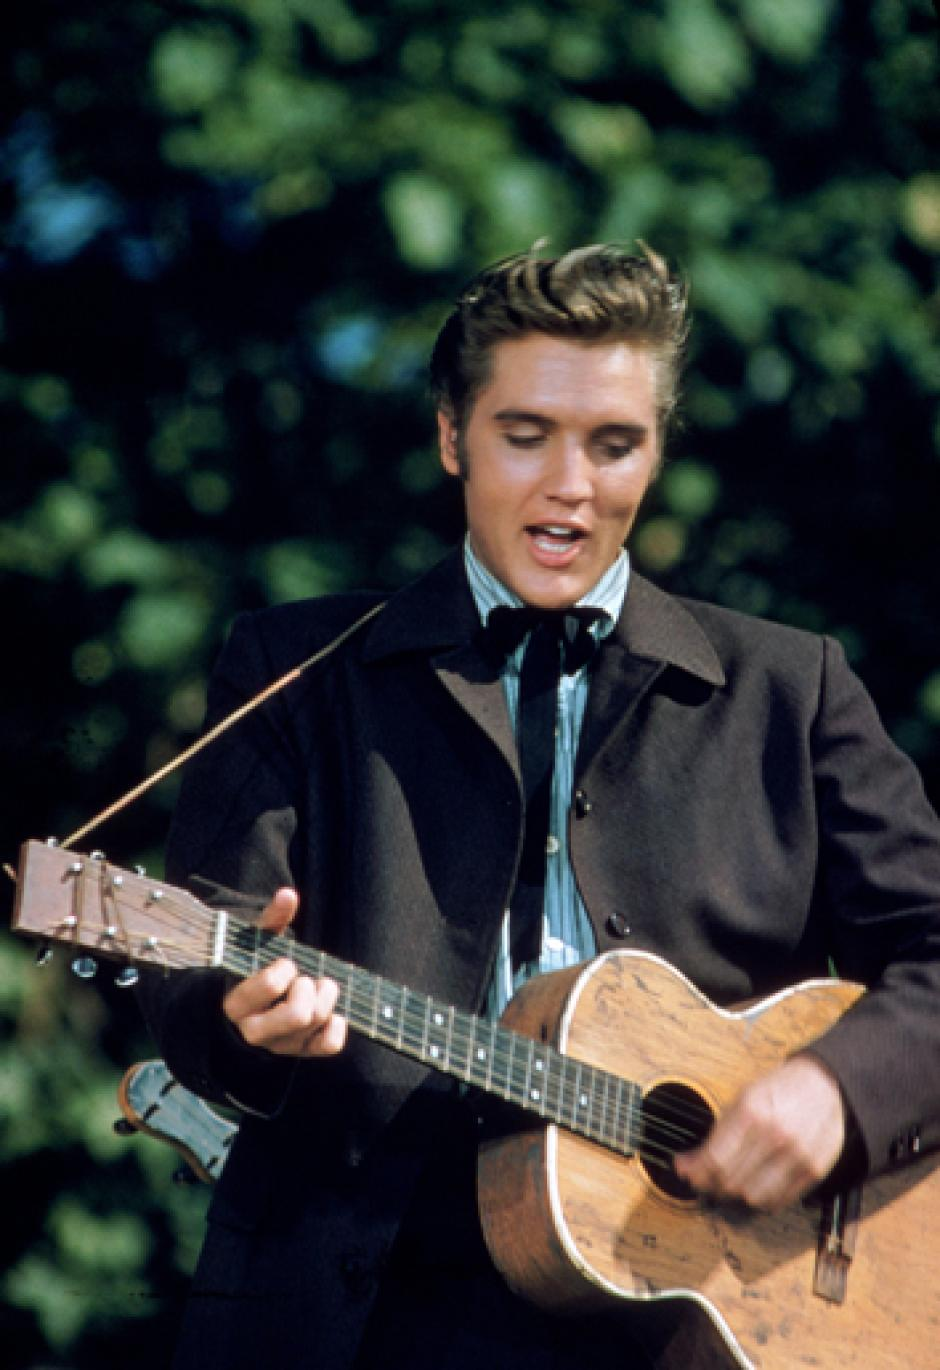 Por la versatilidad de su voz, Presley interpretó magistralmente géneros como R&B, soul, góspel y country. Entre sus éxitos más recordados están Heartbreak Hotel, Love me tender, That's alright, Hound dog, Jailhouse rock, Don´t be cruel, It's now or never, Suspicious mind, Are you lonesome tonight?, entre otros.